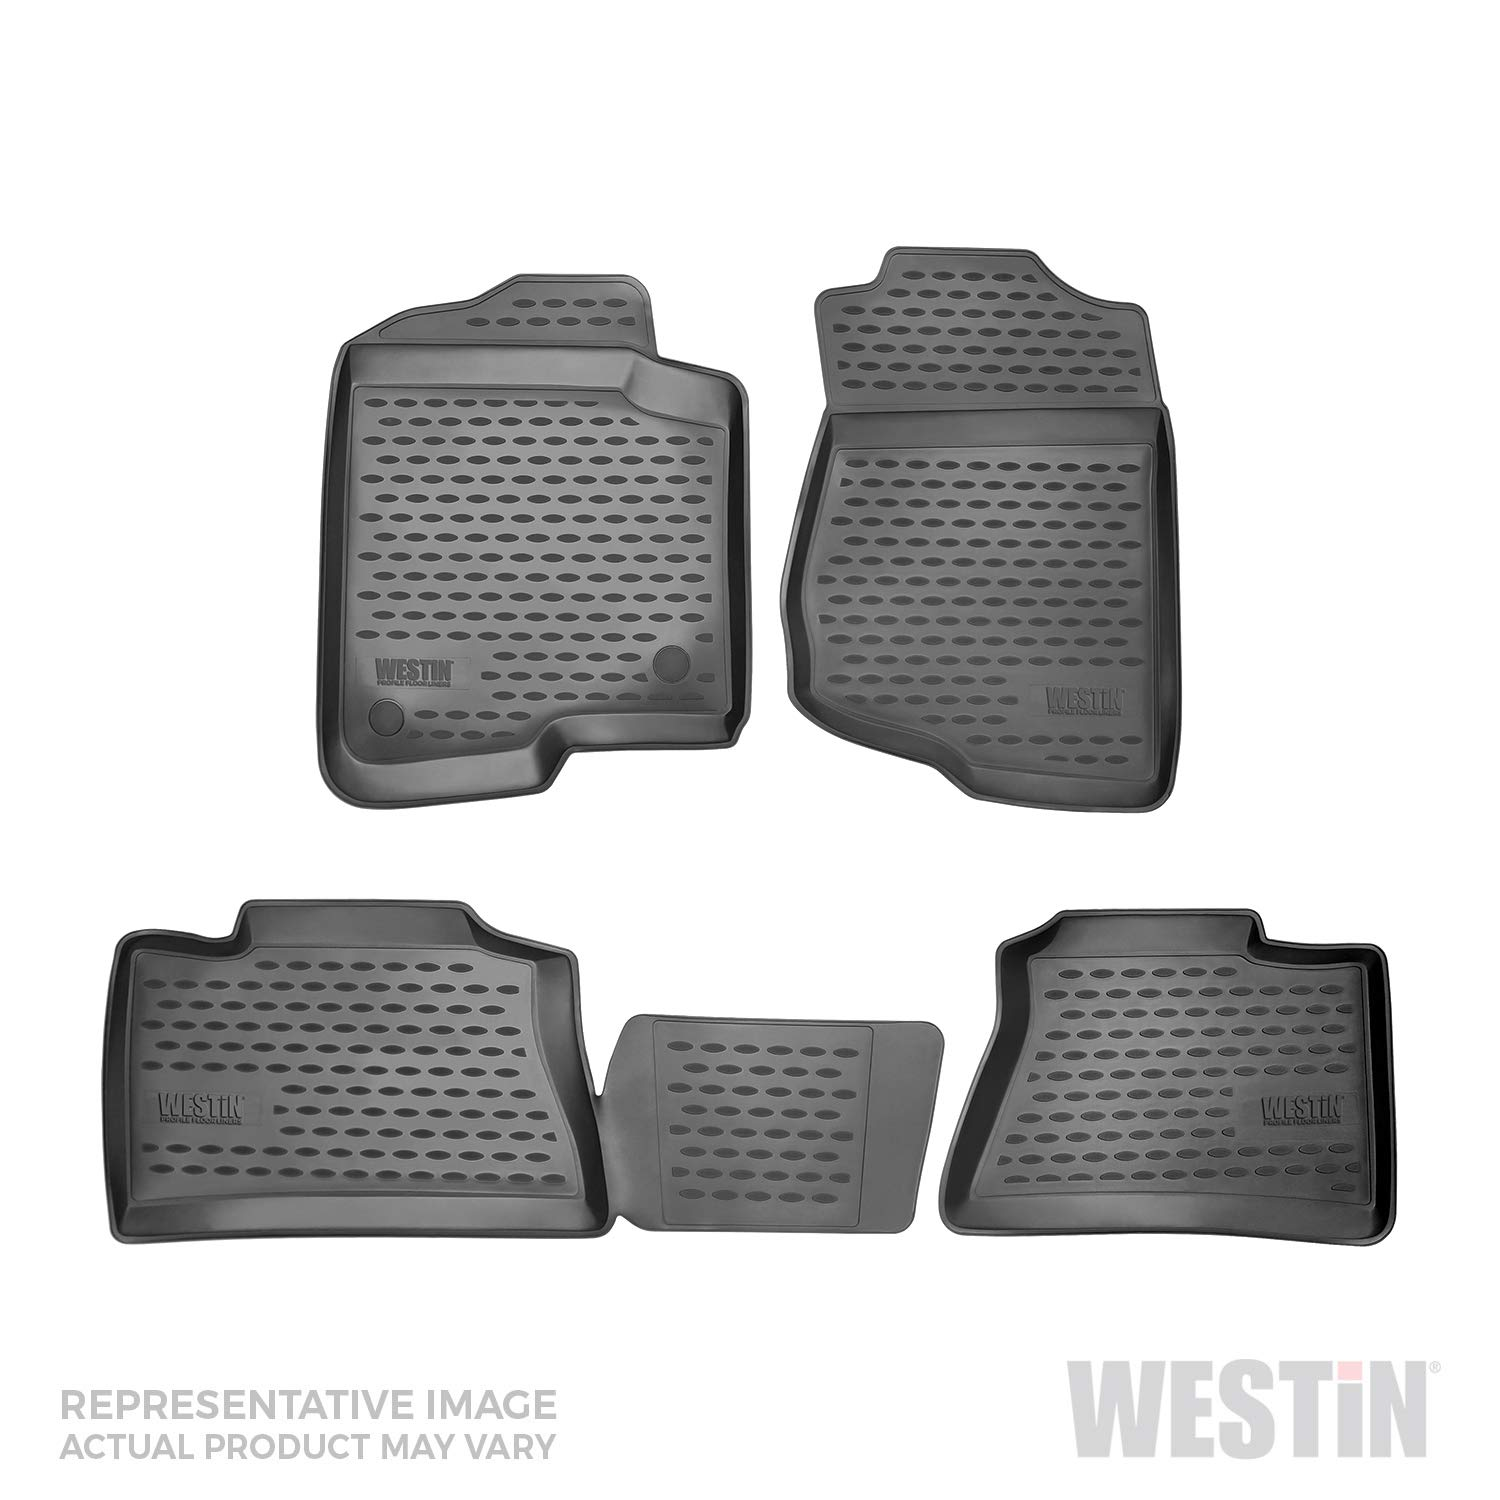 Westin 74-27-41013 Profile Custom Fit Floor Liners Front & 2nd Row fits Mercedes-Benz GLA-Class 2014-2017 All Weather Waterproof Heavy Duty Floor Mat by Westin